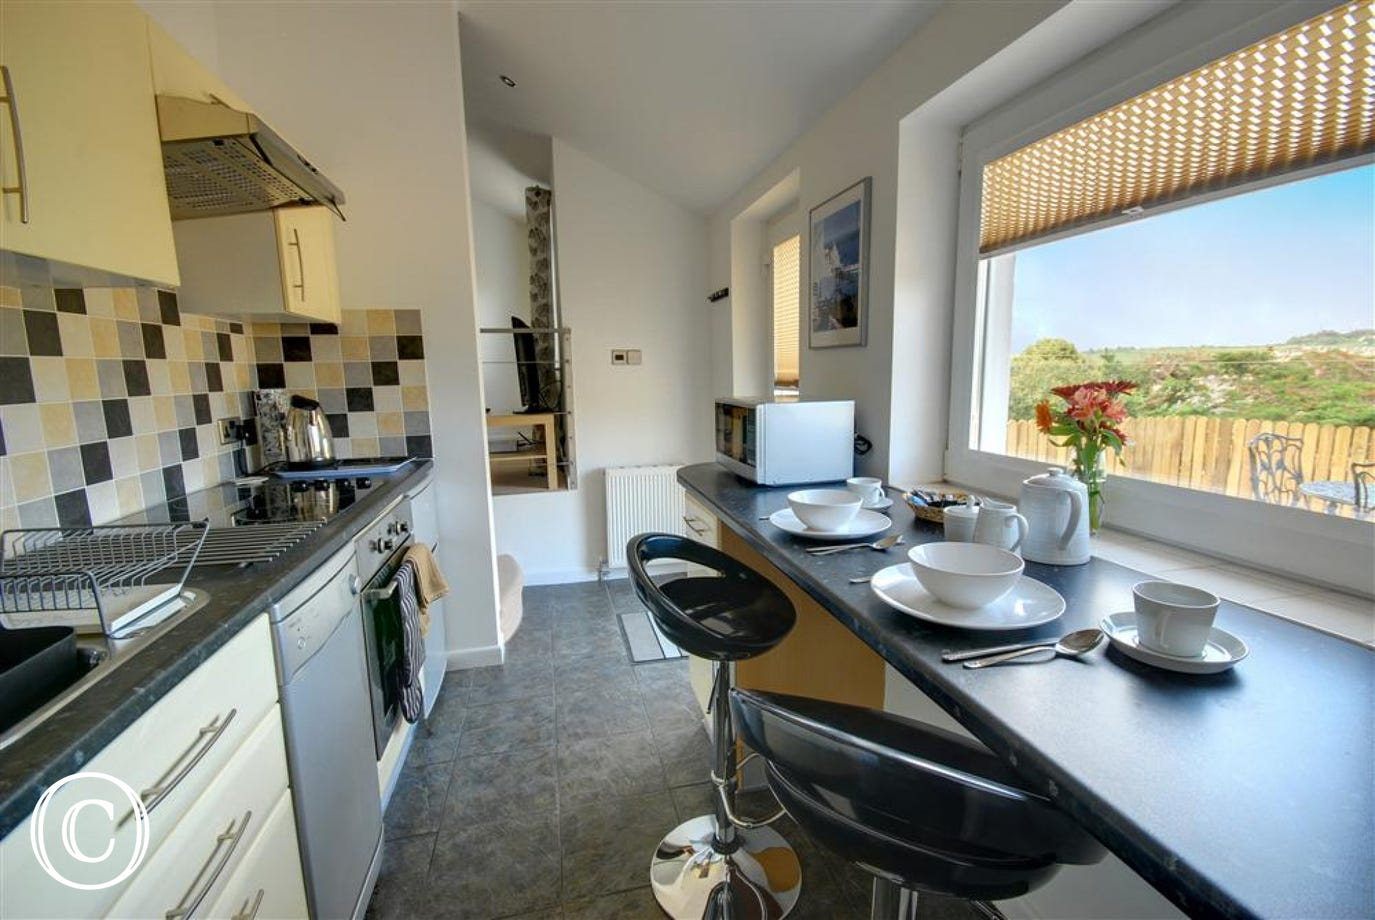 The lovely modern kitchen with breakfast bar over looking the patio